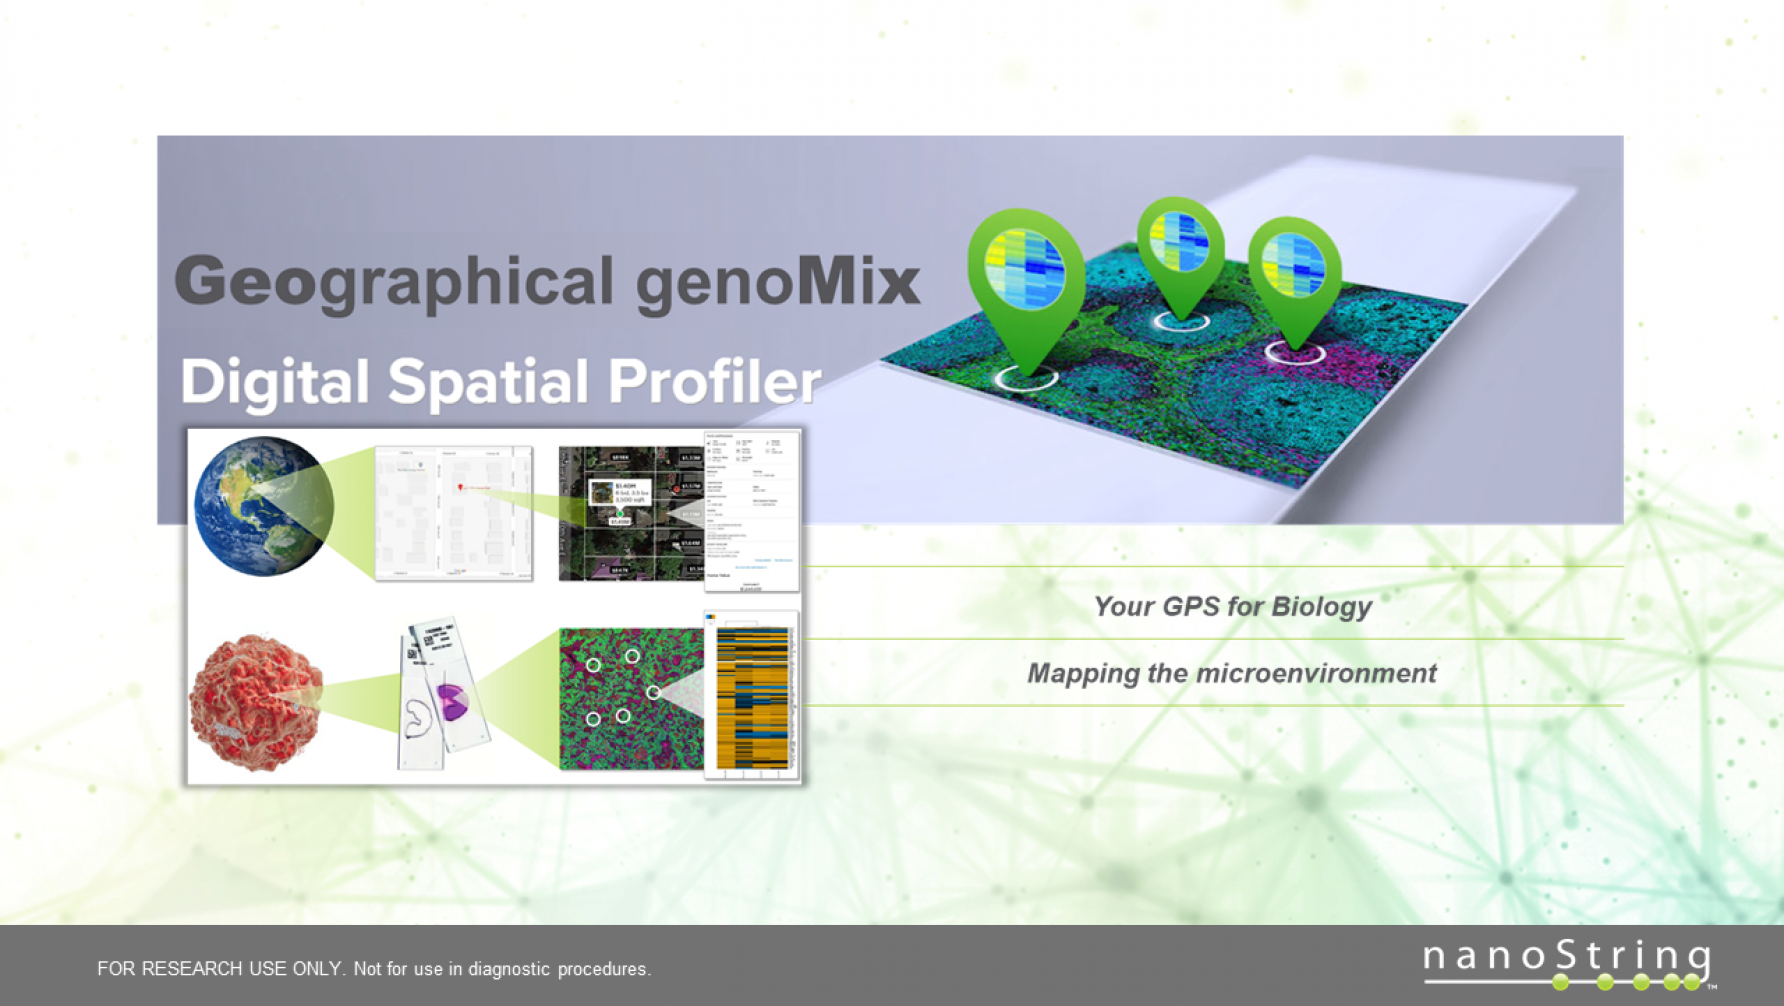 Welcome to a seminar on Spatial Omics using nanoStrings GeoMx DSP instrument